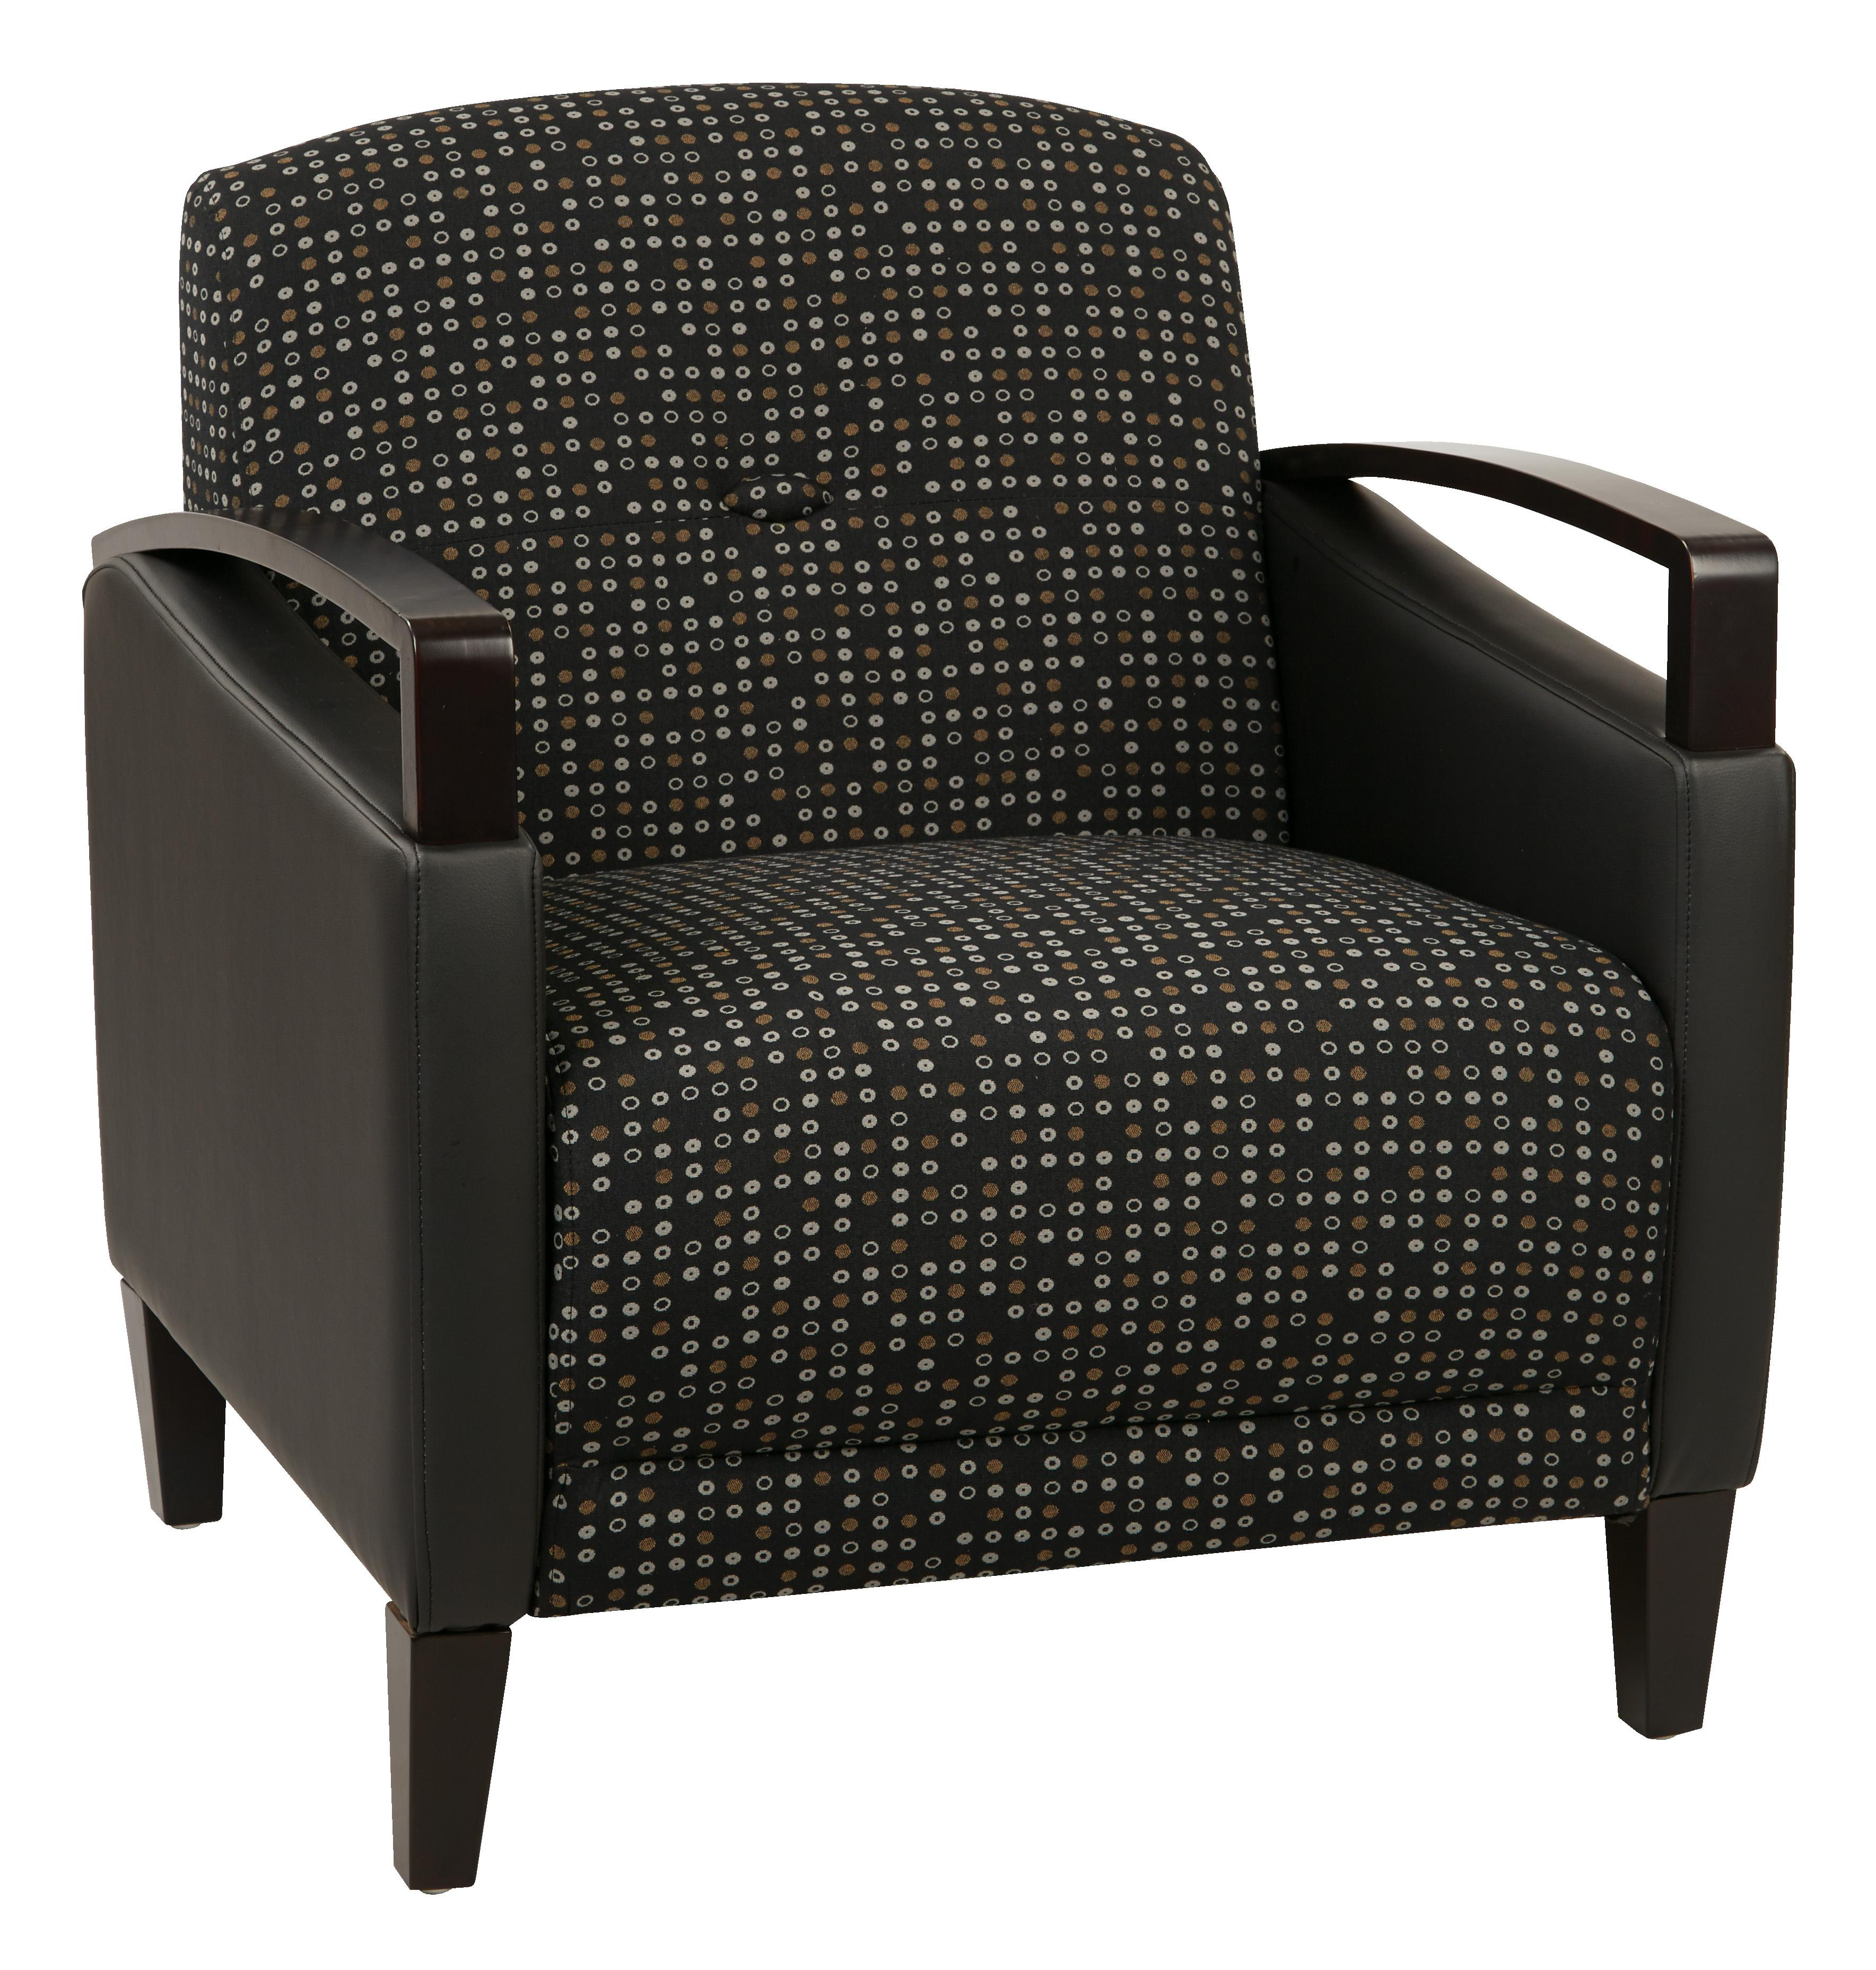 Main Street 2-Tone  Fabric Chair-Color:Onyx & Black